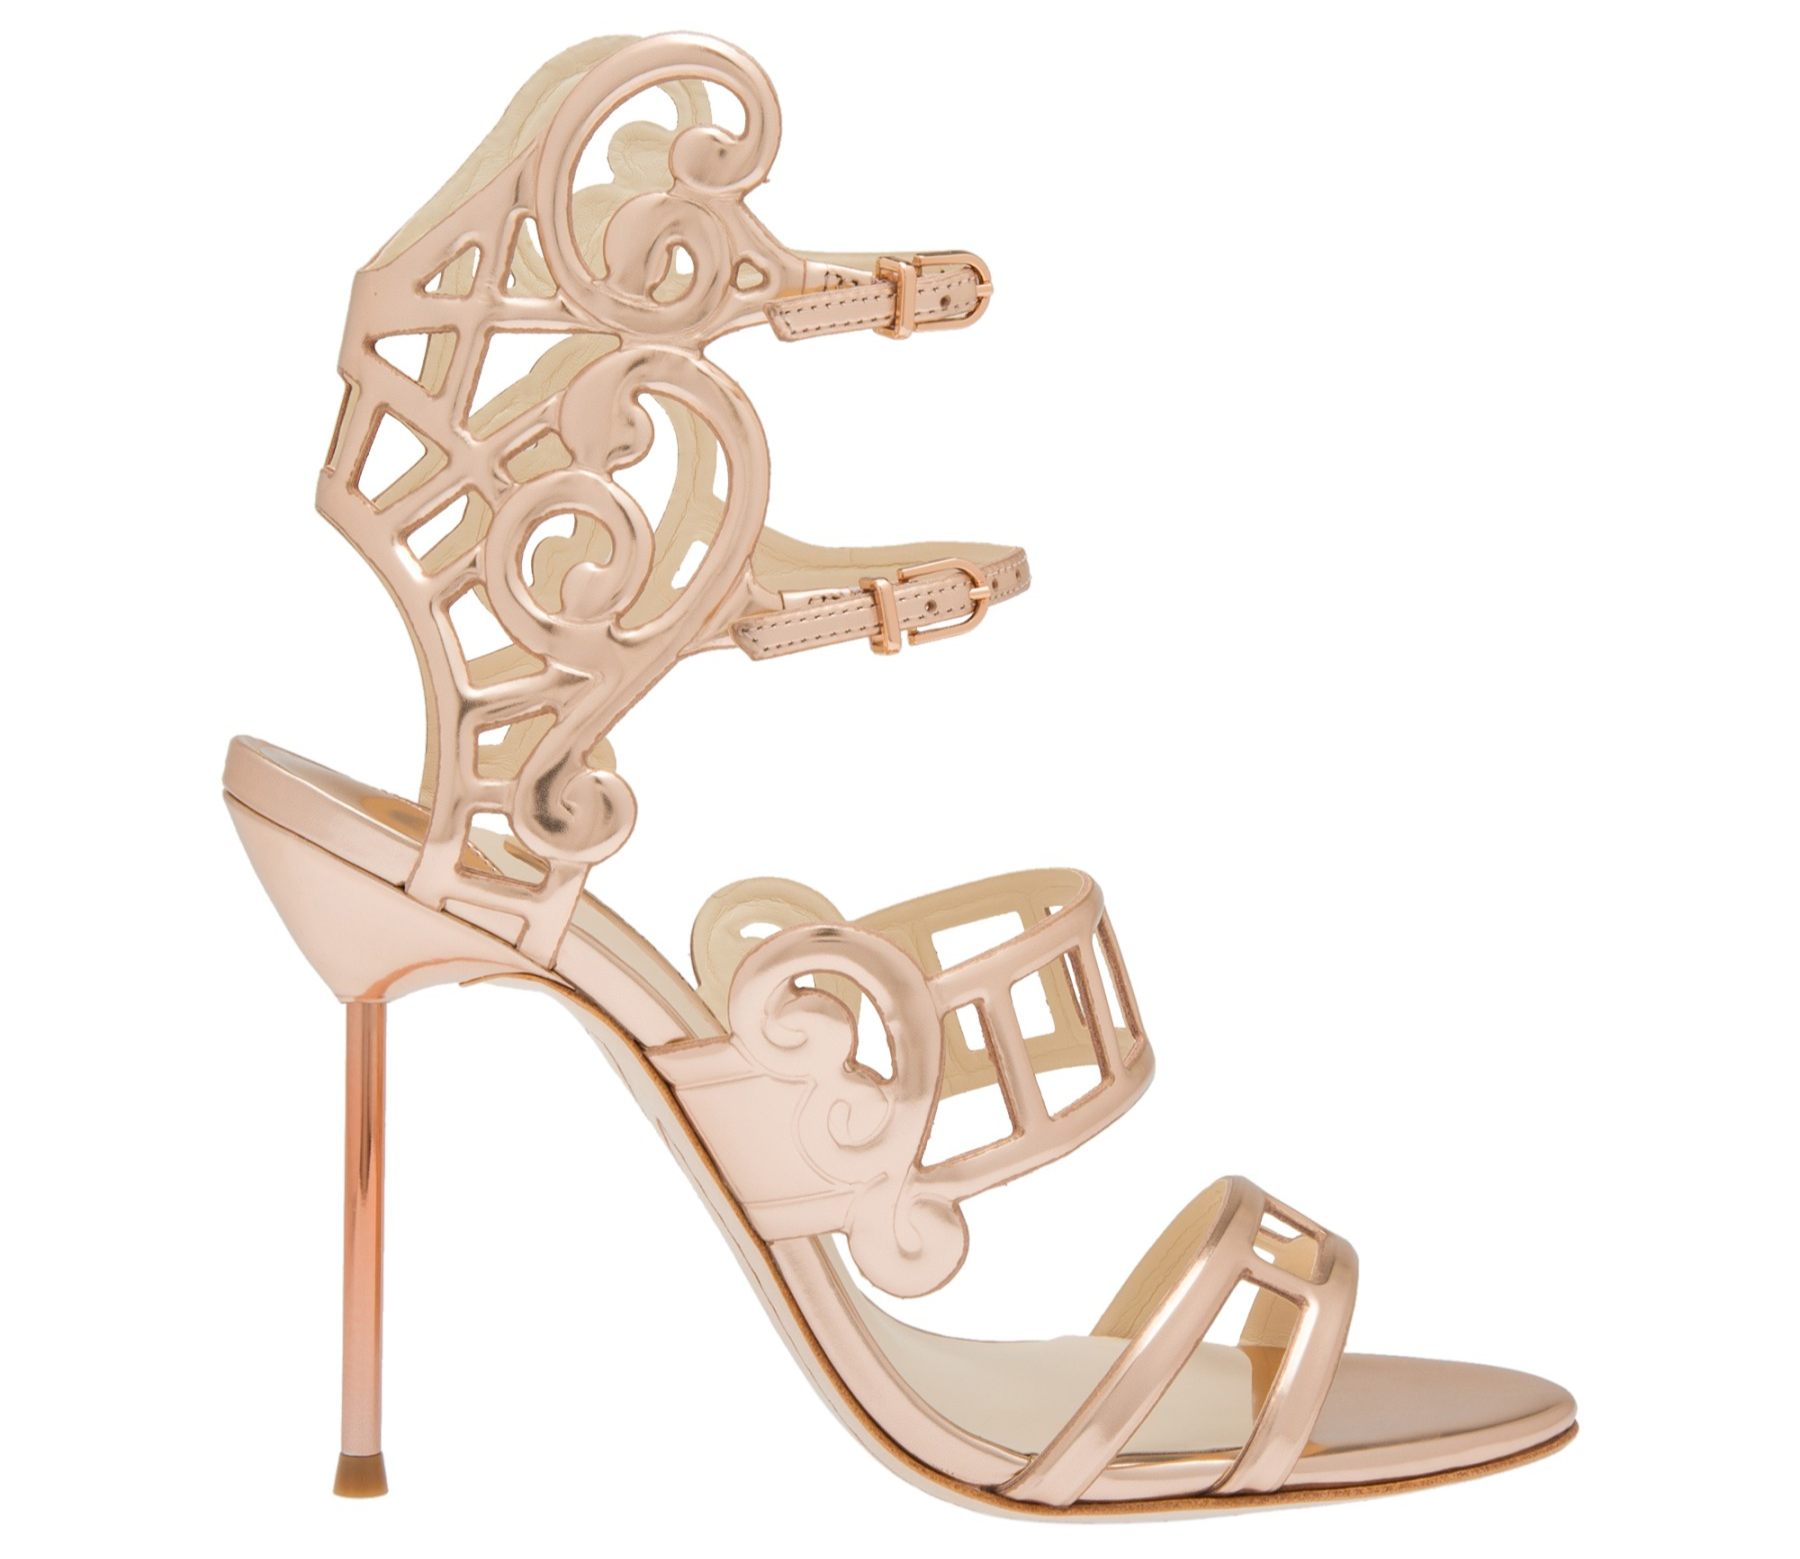 Sophia Webster Birdie Cutout Heels The London Girl High Glamour Suede Inspired By Birdcages And Front Porches These Exude Tropical Available In Black Rose Gold Showcasing Websters